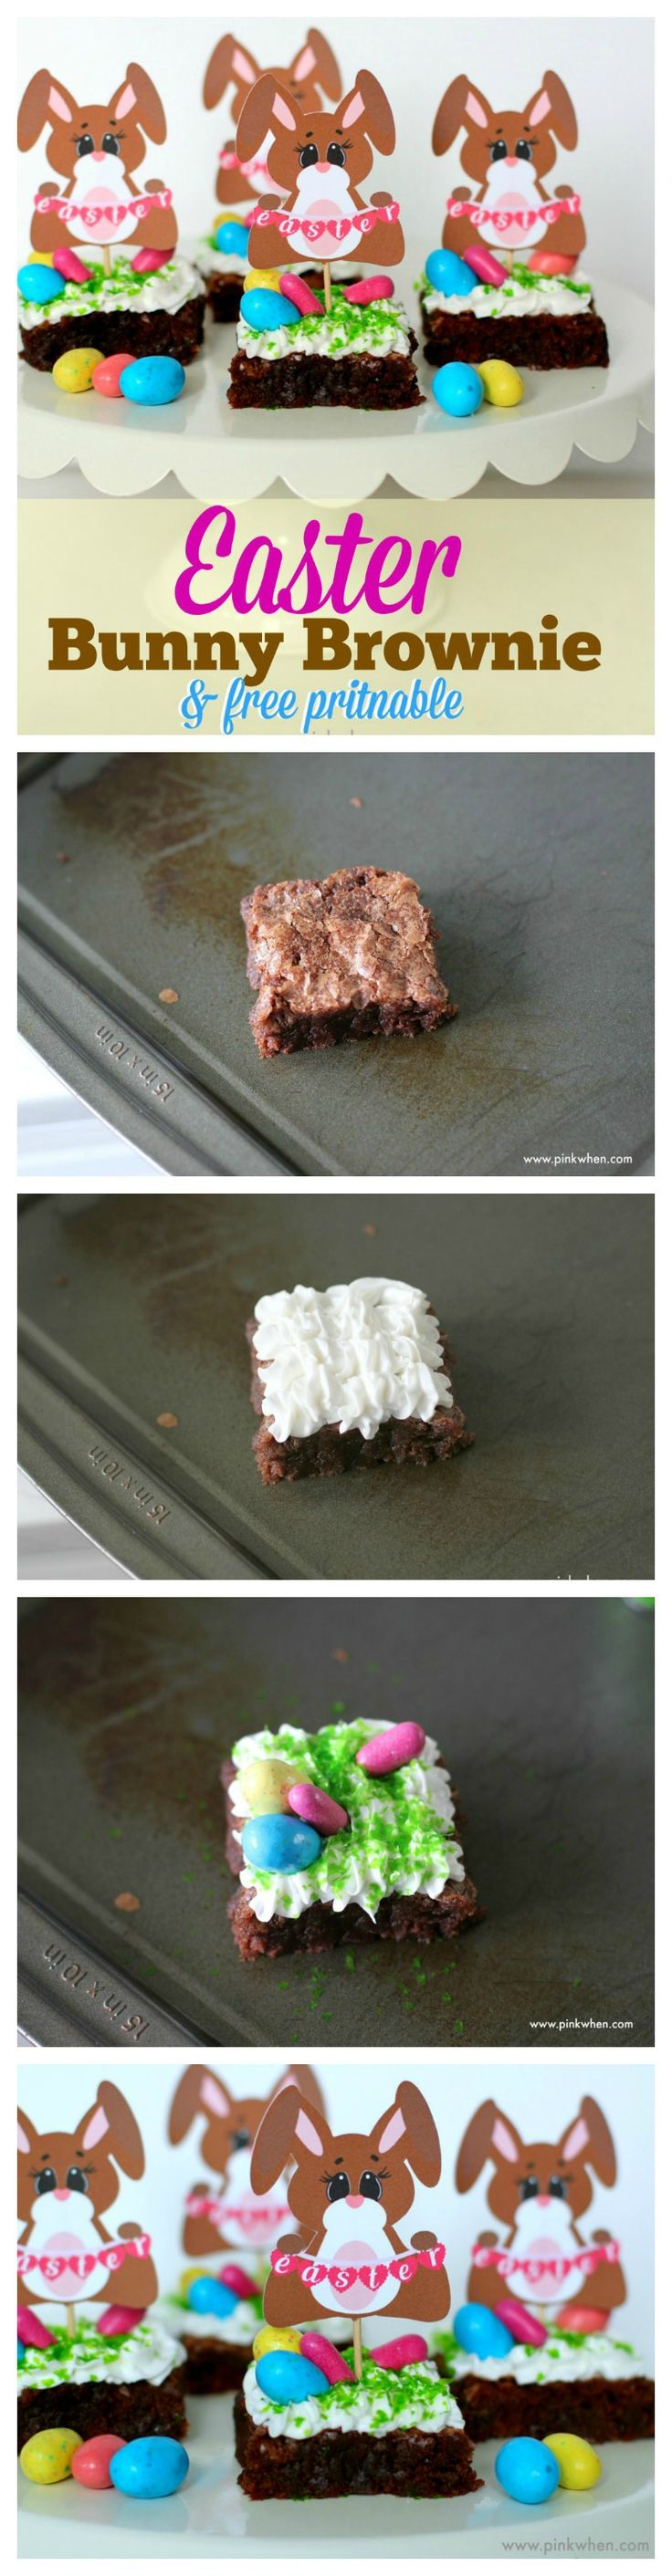 Super cute Easter Bunny Brownie with free Printable Easter Bunny topper. So easy!